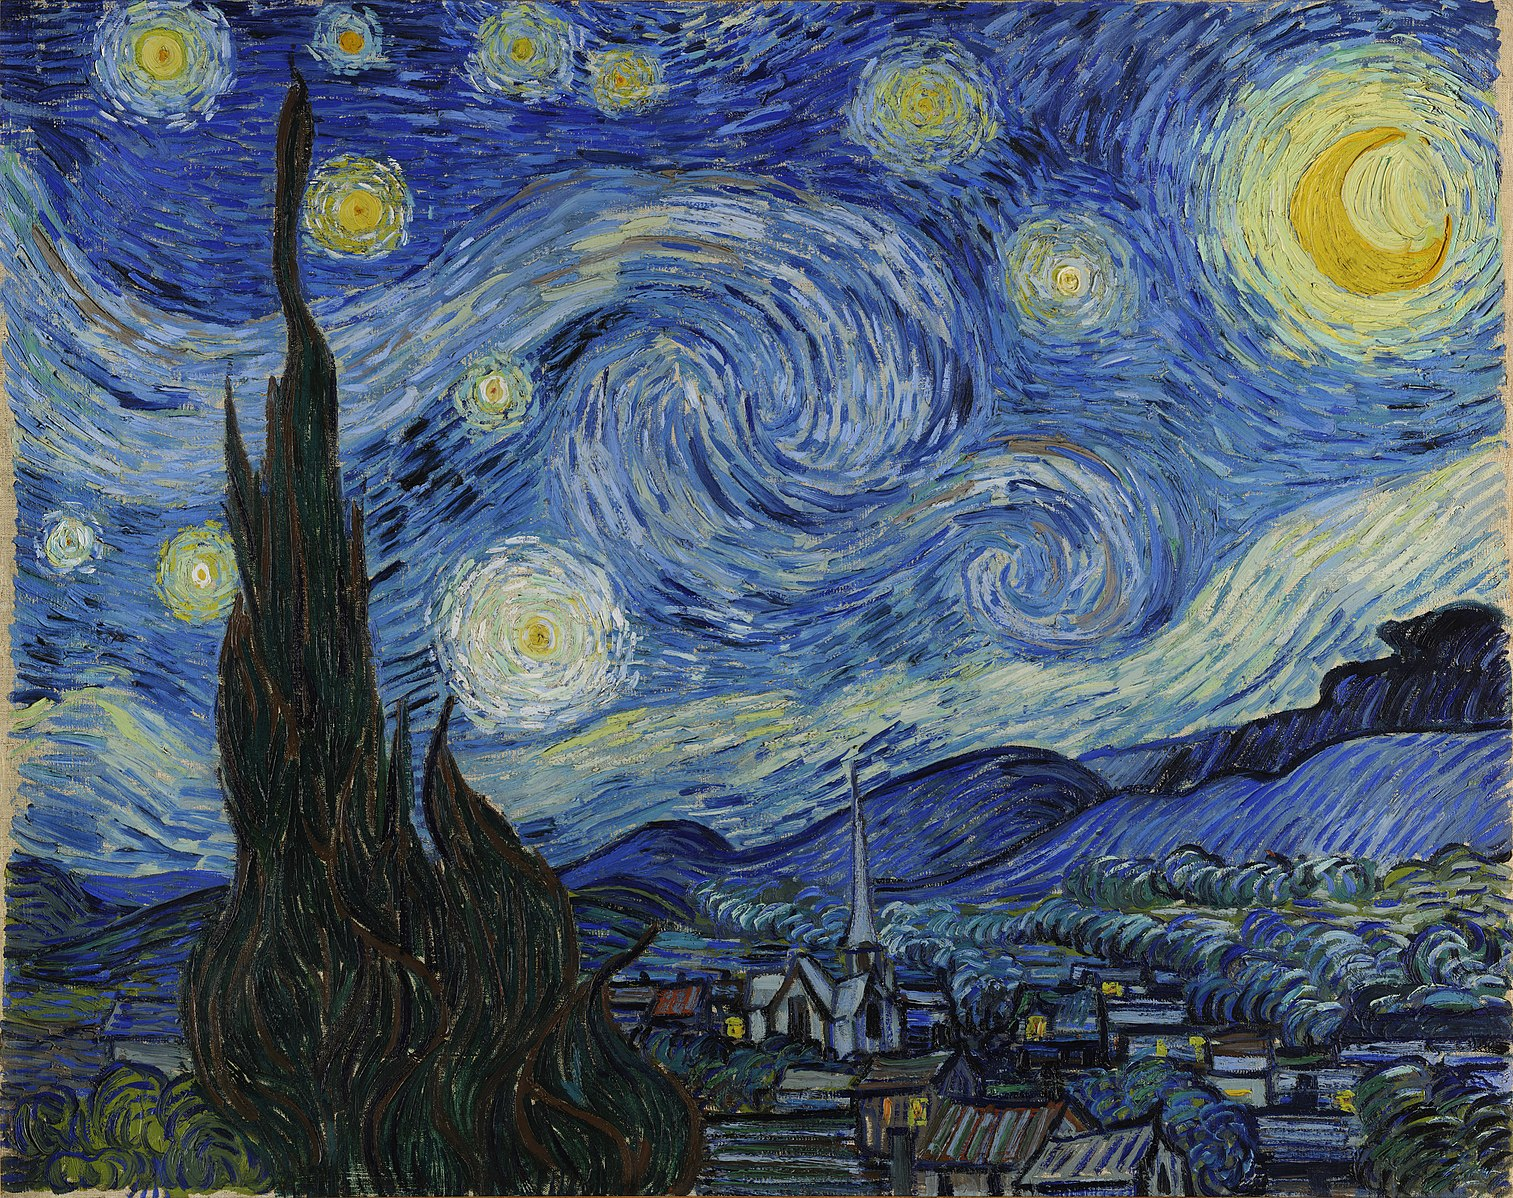 Van Gogh 1889 mai Starry_Night_ Moma 73 x 92.